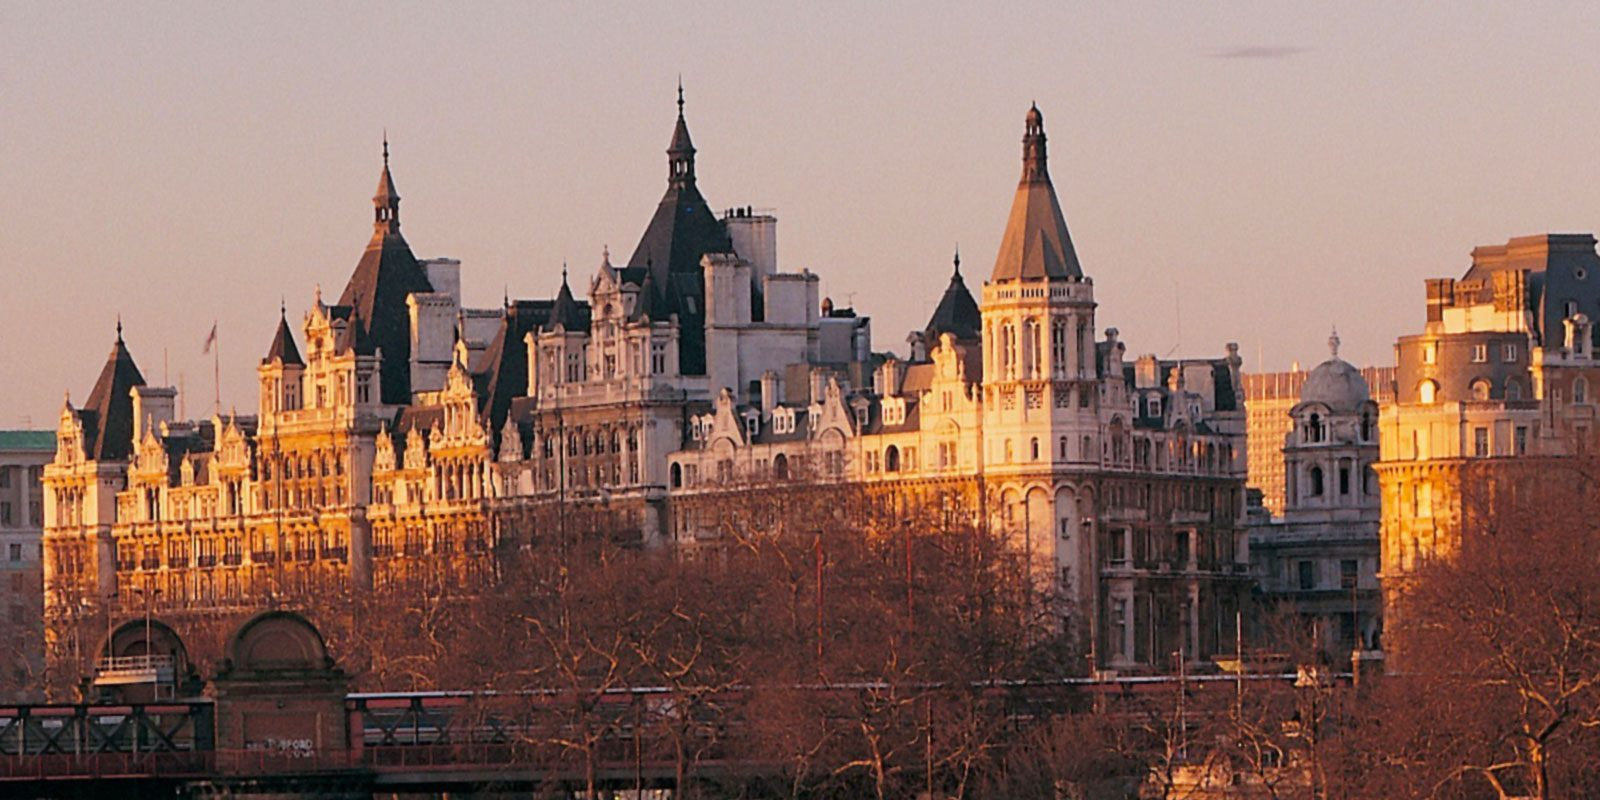 HR1600x1200, The Royal Horseguards Hotel, River Thames, Prestigious Venues